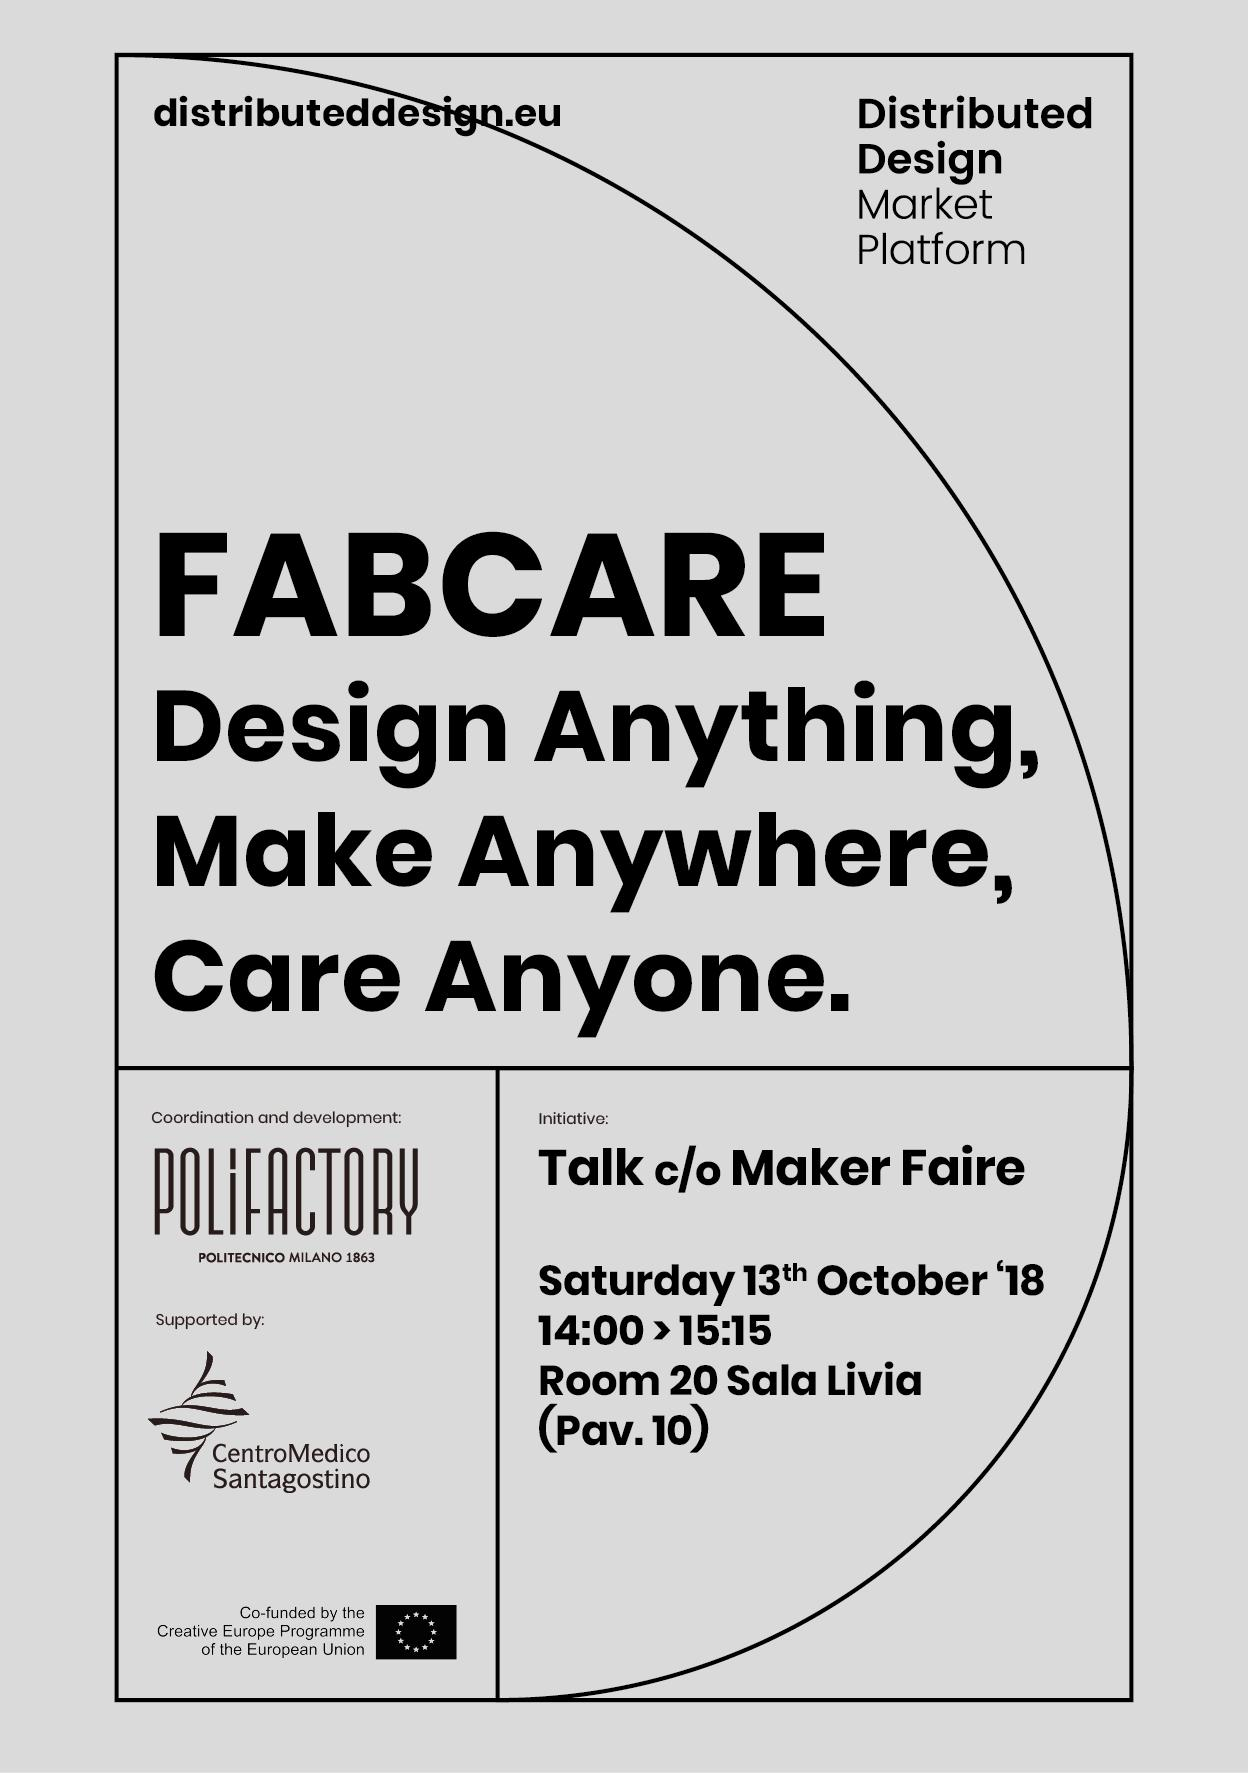 DDMP - FABCARE. Design Anything, Make Anywhere, Care Anyone